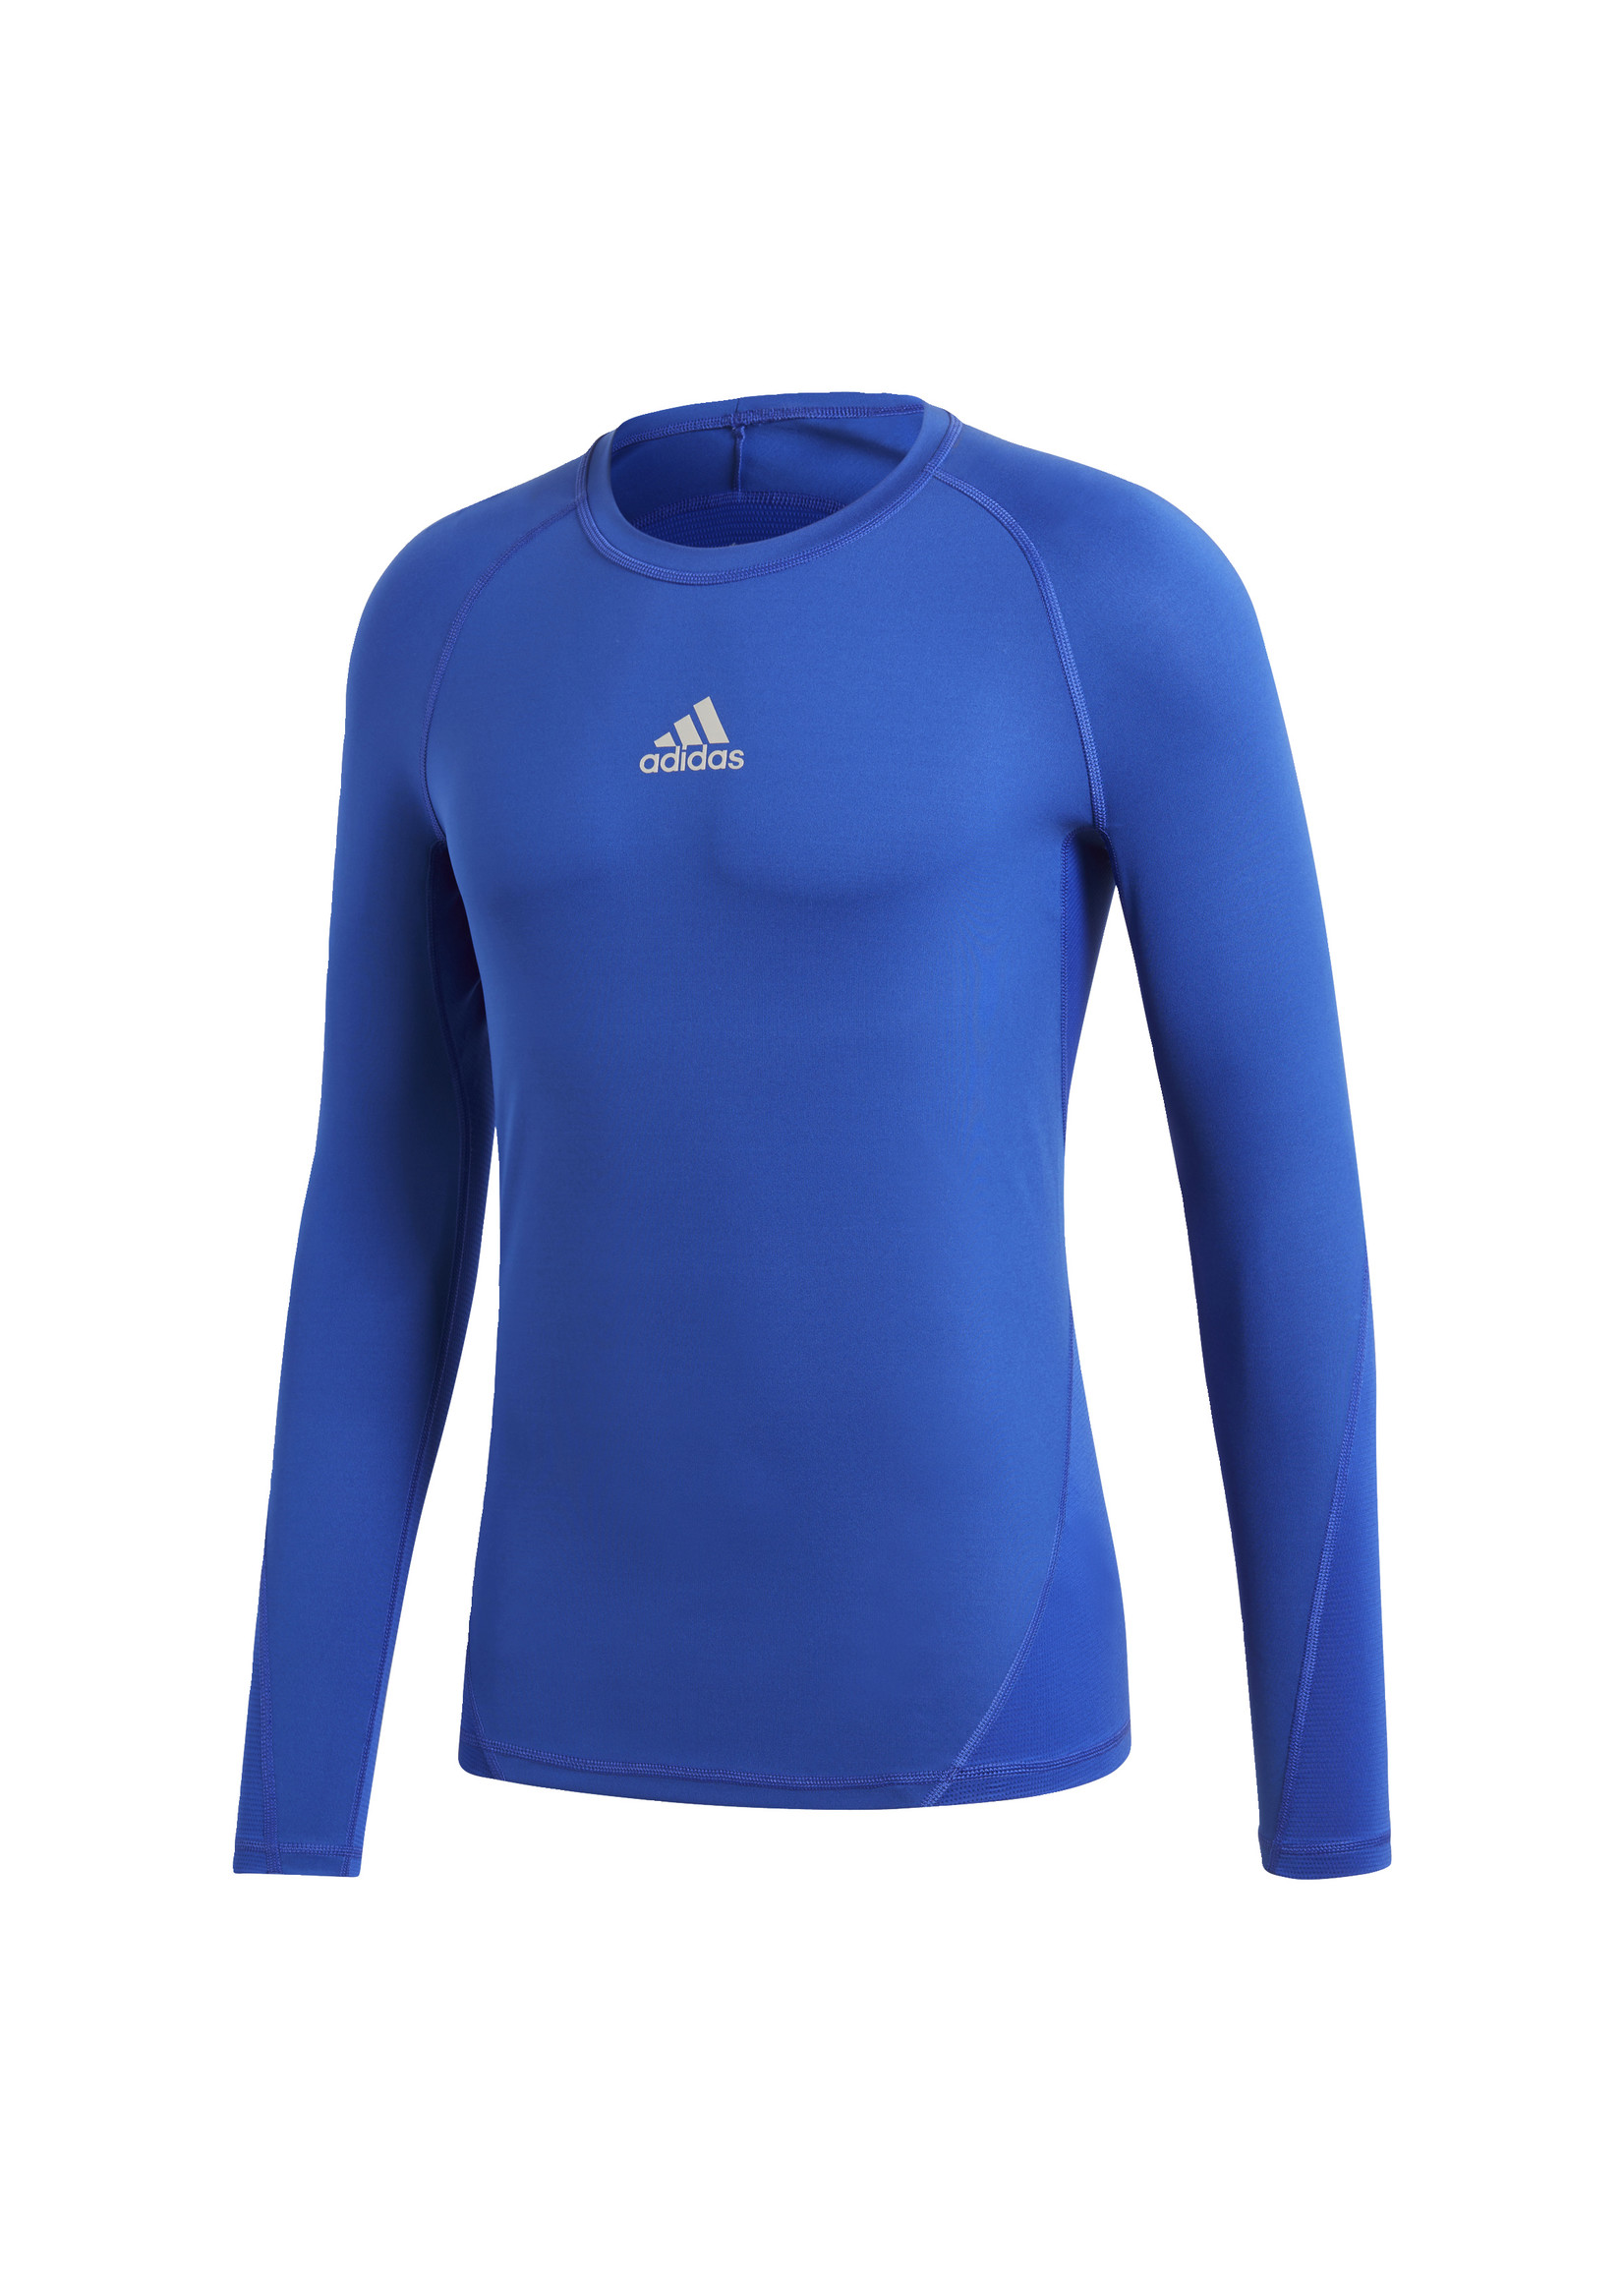 Adidas Compression Blue Long Sleeve Youth